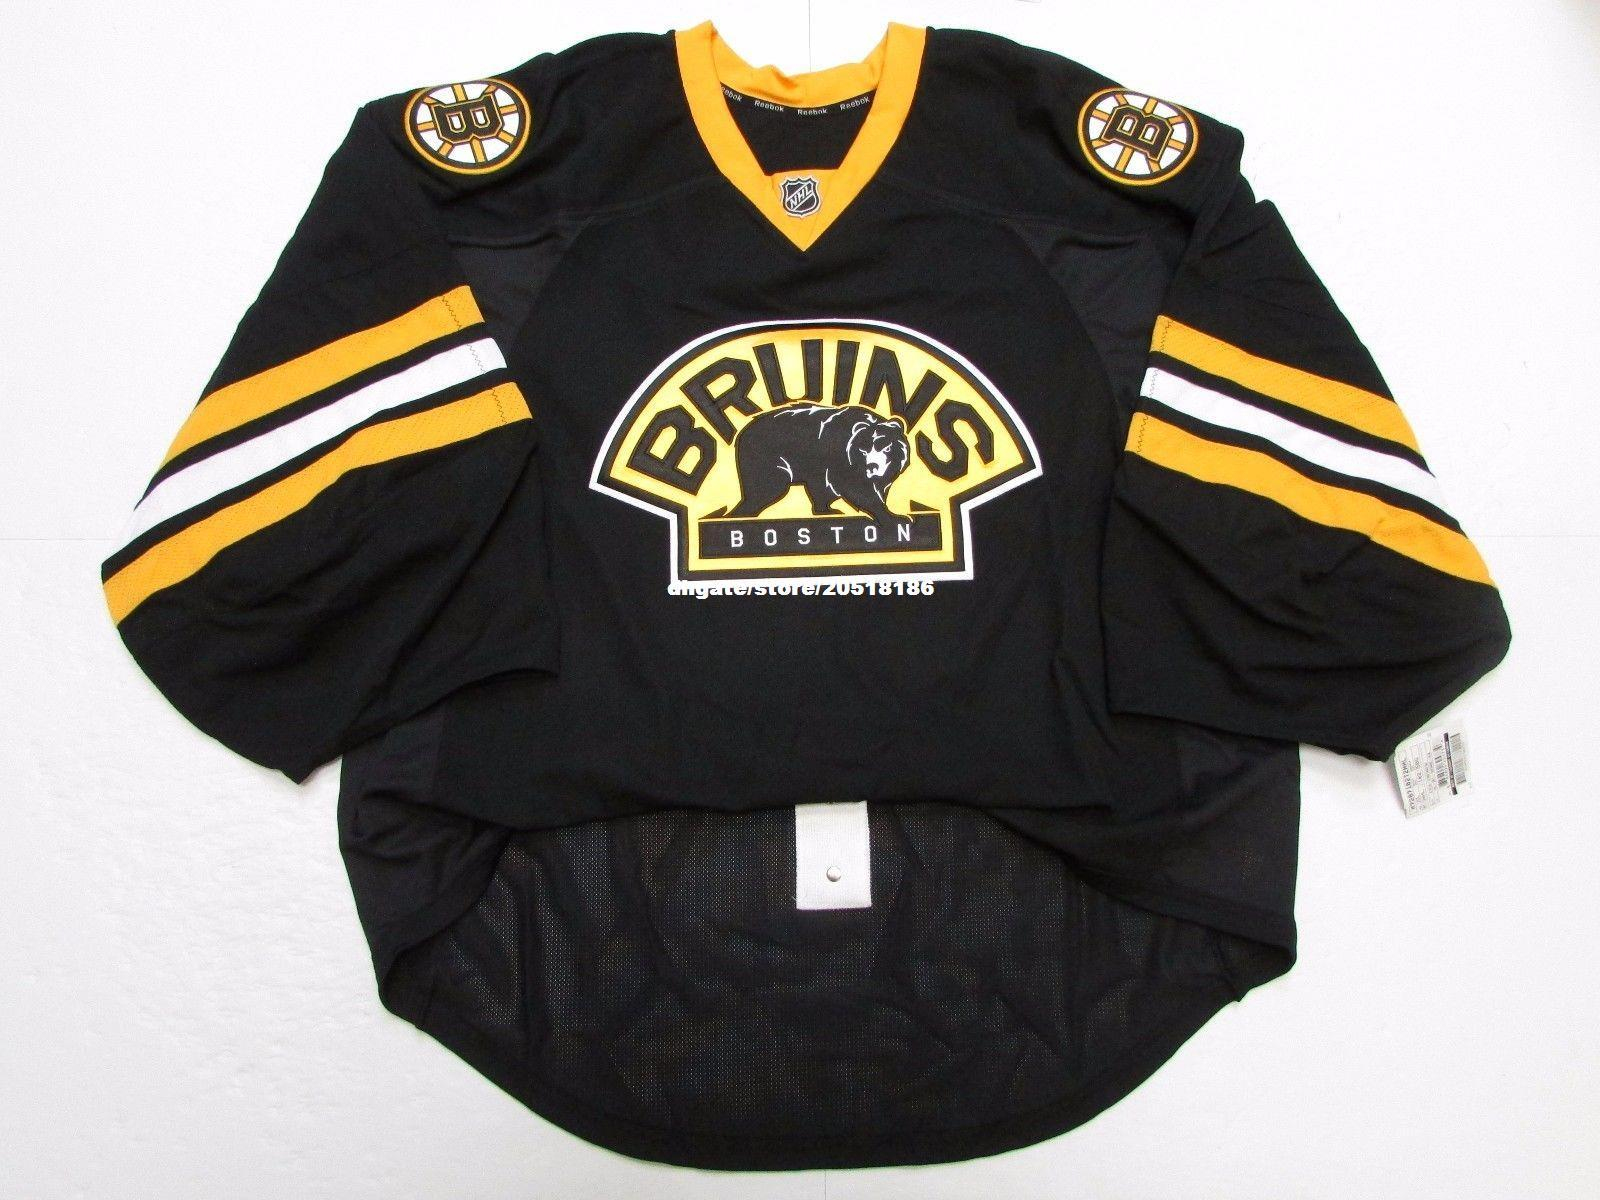 e6a71981c 2019 Cheap Wholesale Custom BOSTON BRUINS THIRD TEAM ISSUED EDGE JERSEY  GOALIE CUT 60 Mens Stitched Personalized Hockey Jerseys From Nfljersey1